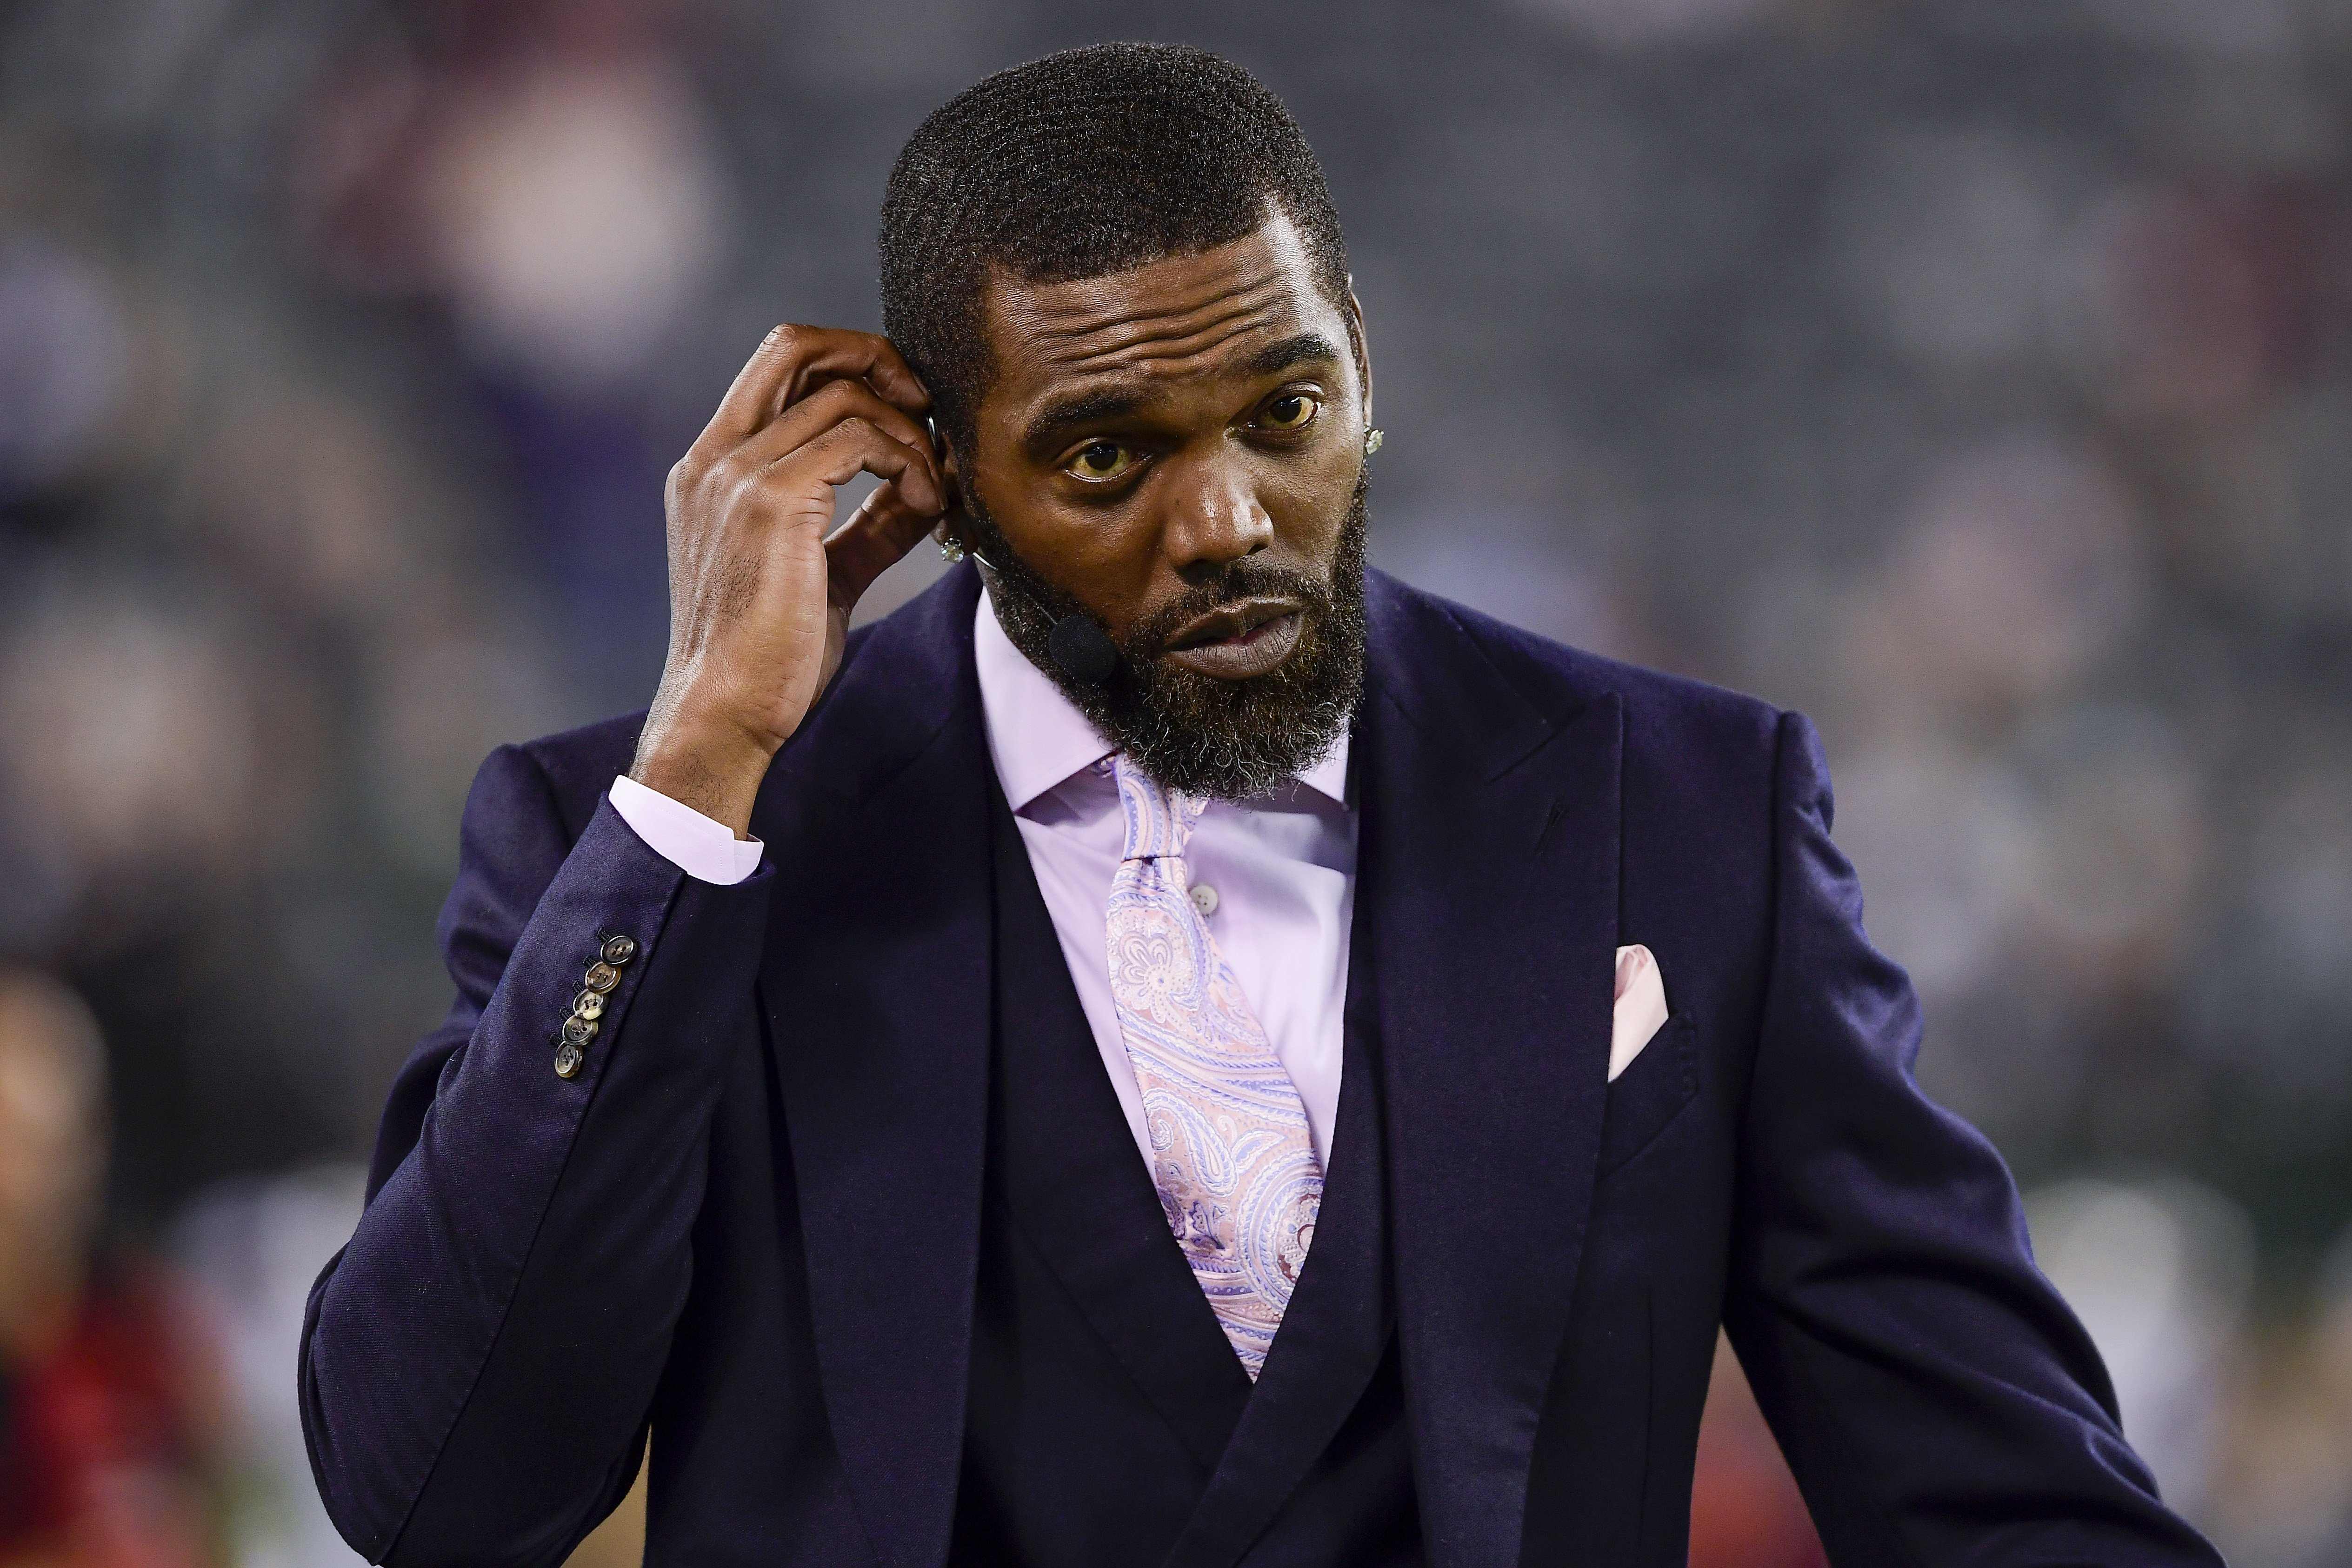 Randy Moss at MetLife Stadium on October 21, 2019. I Image: Getty Images.